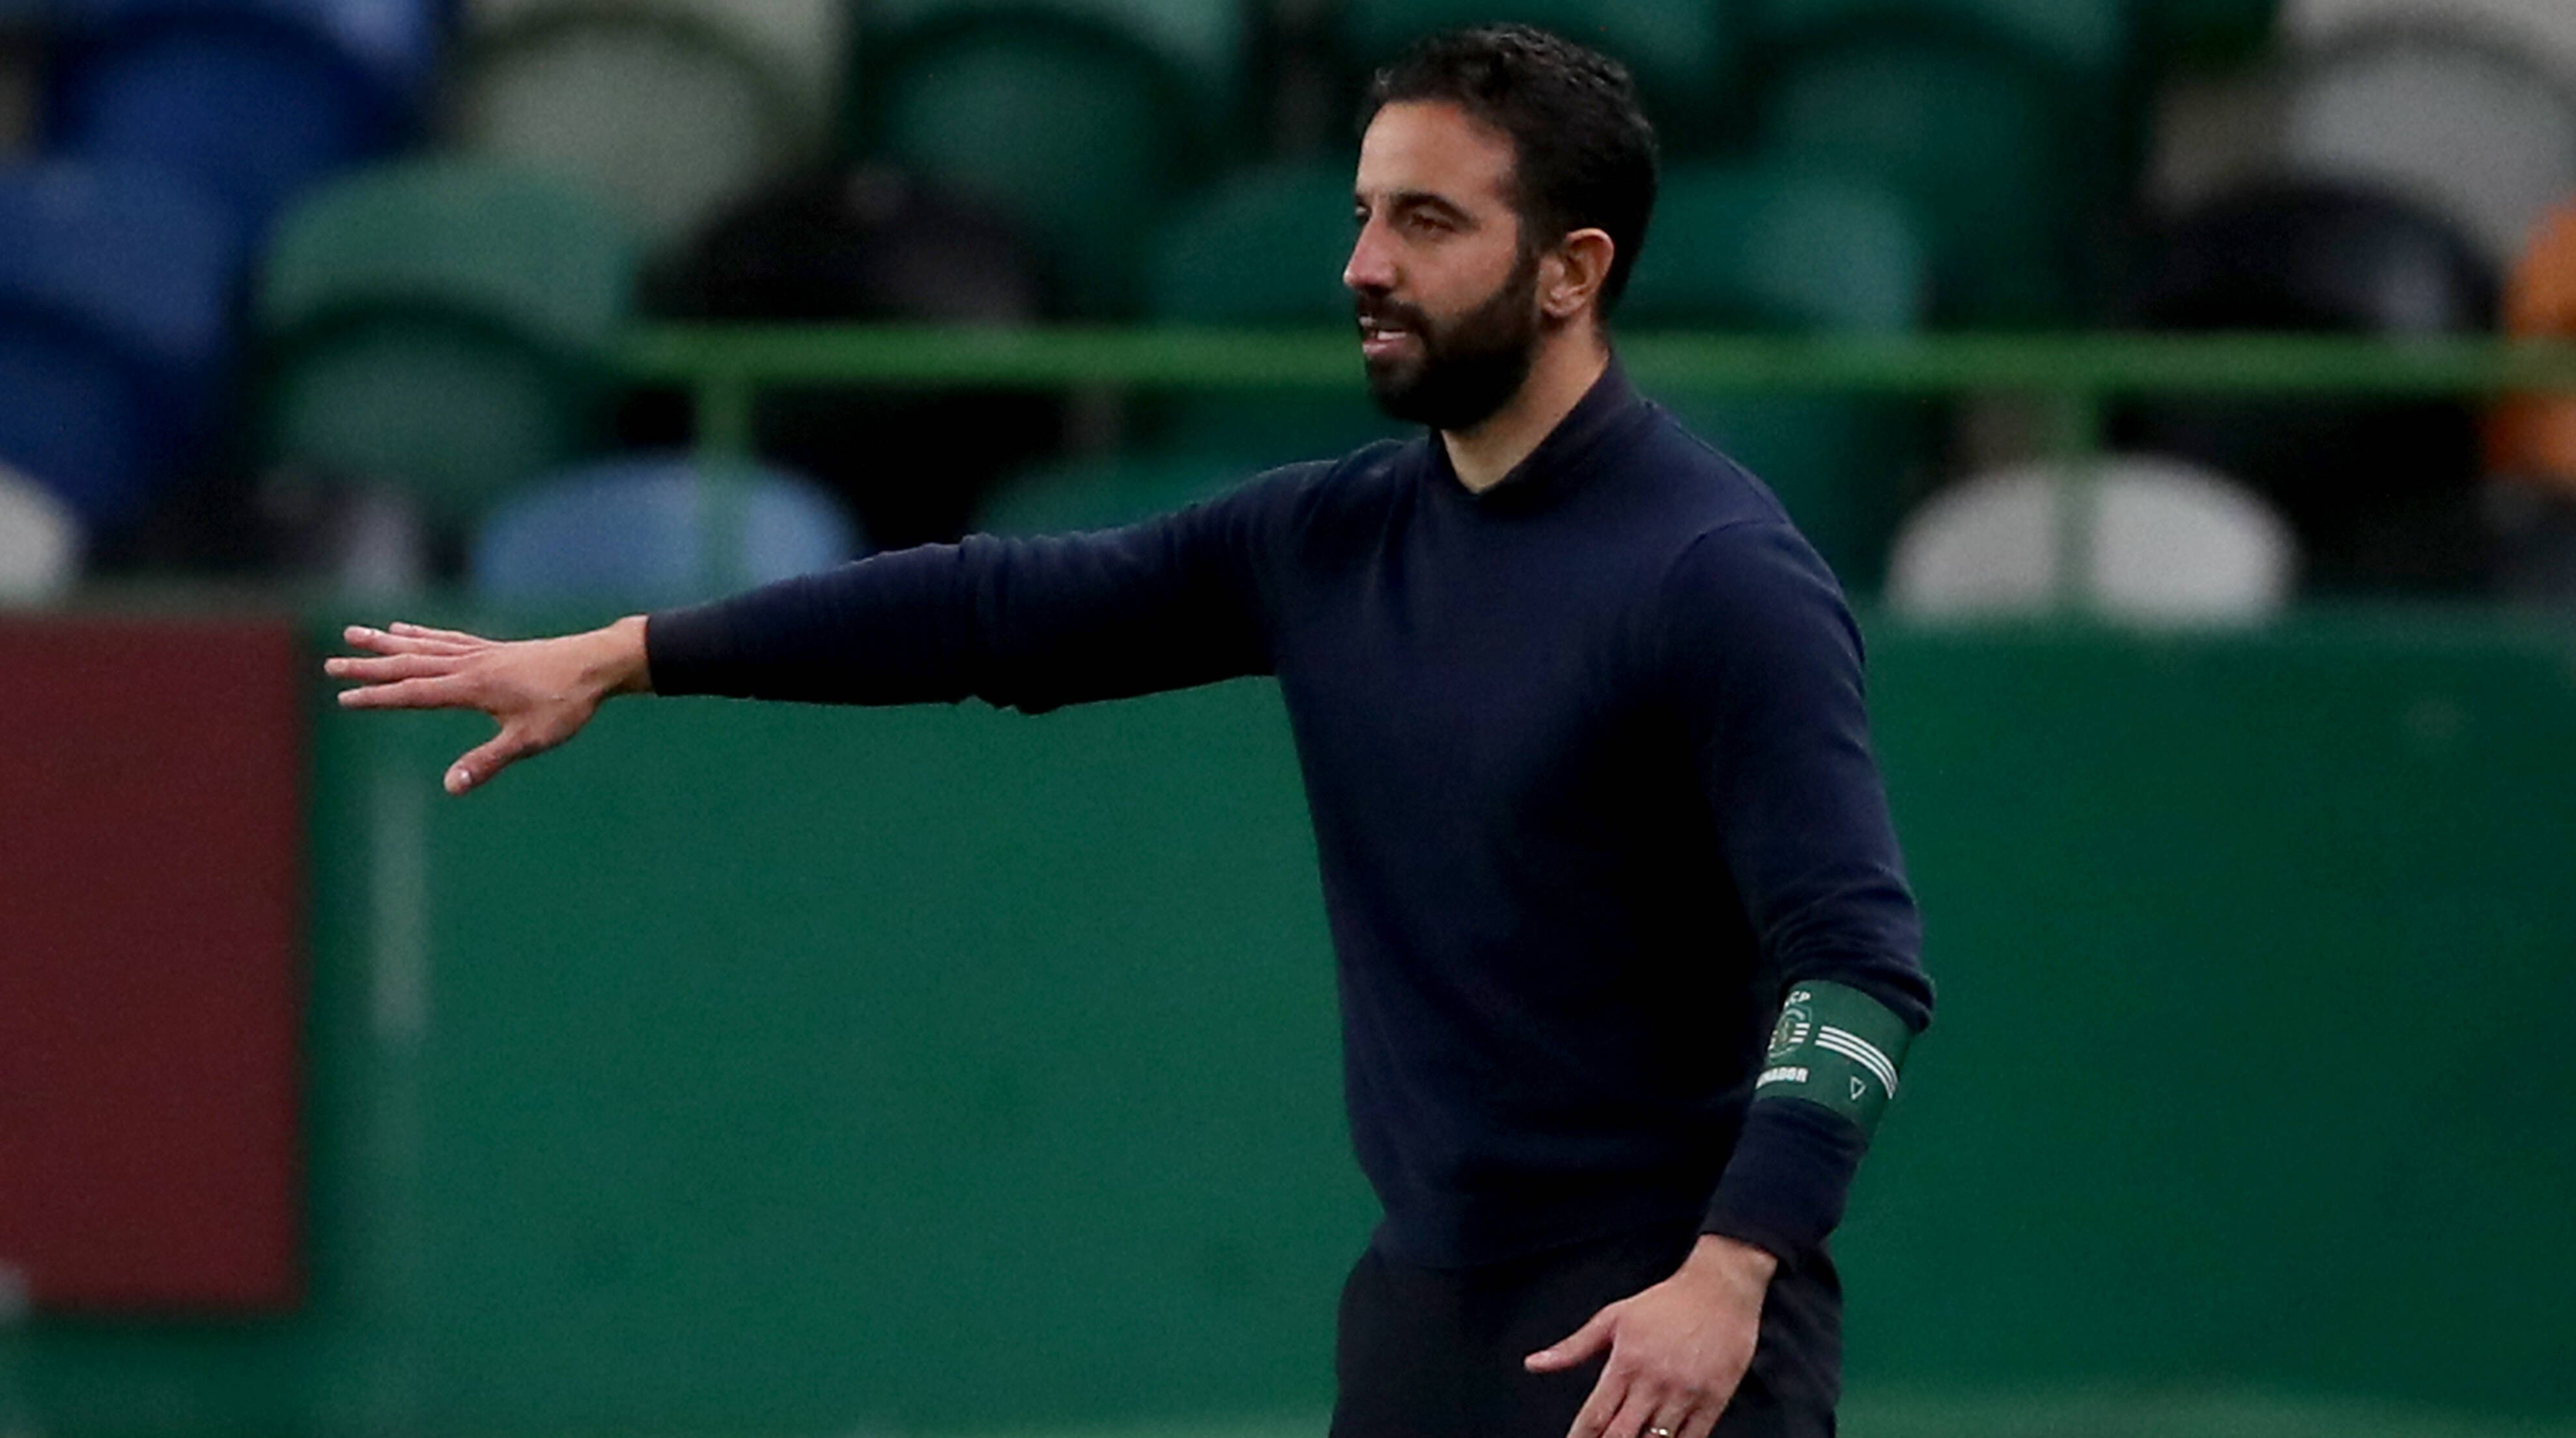 """Sporting CP head coach Amorim threatened with long-term ban - """"Indelible stain on reputation""""   Transfermarkt"""